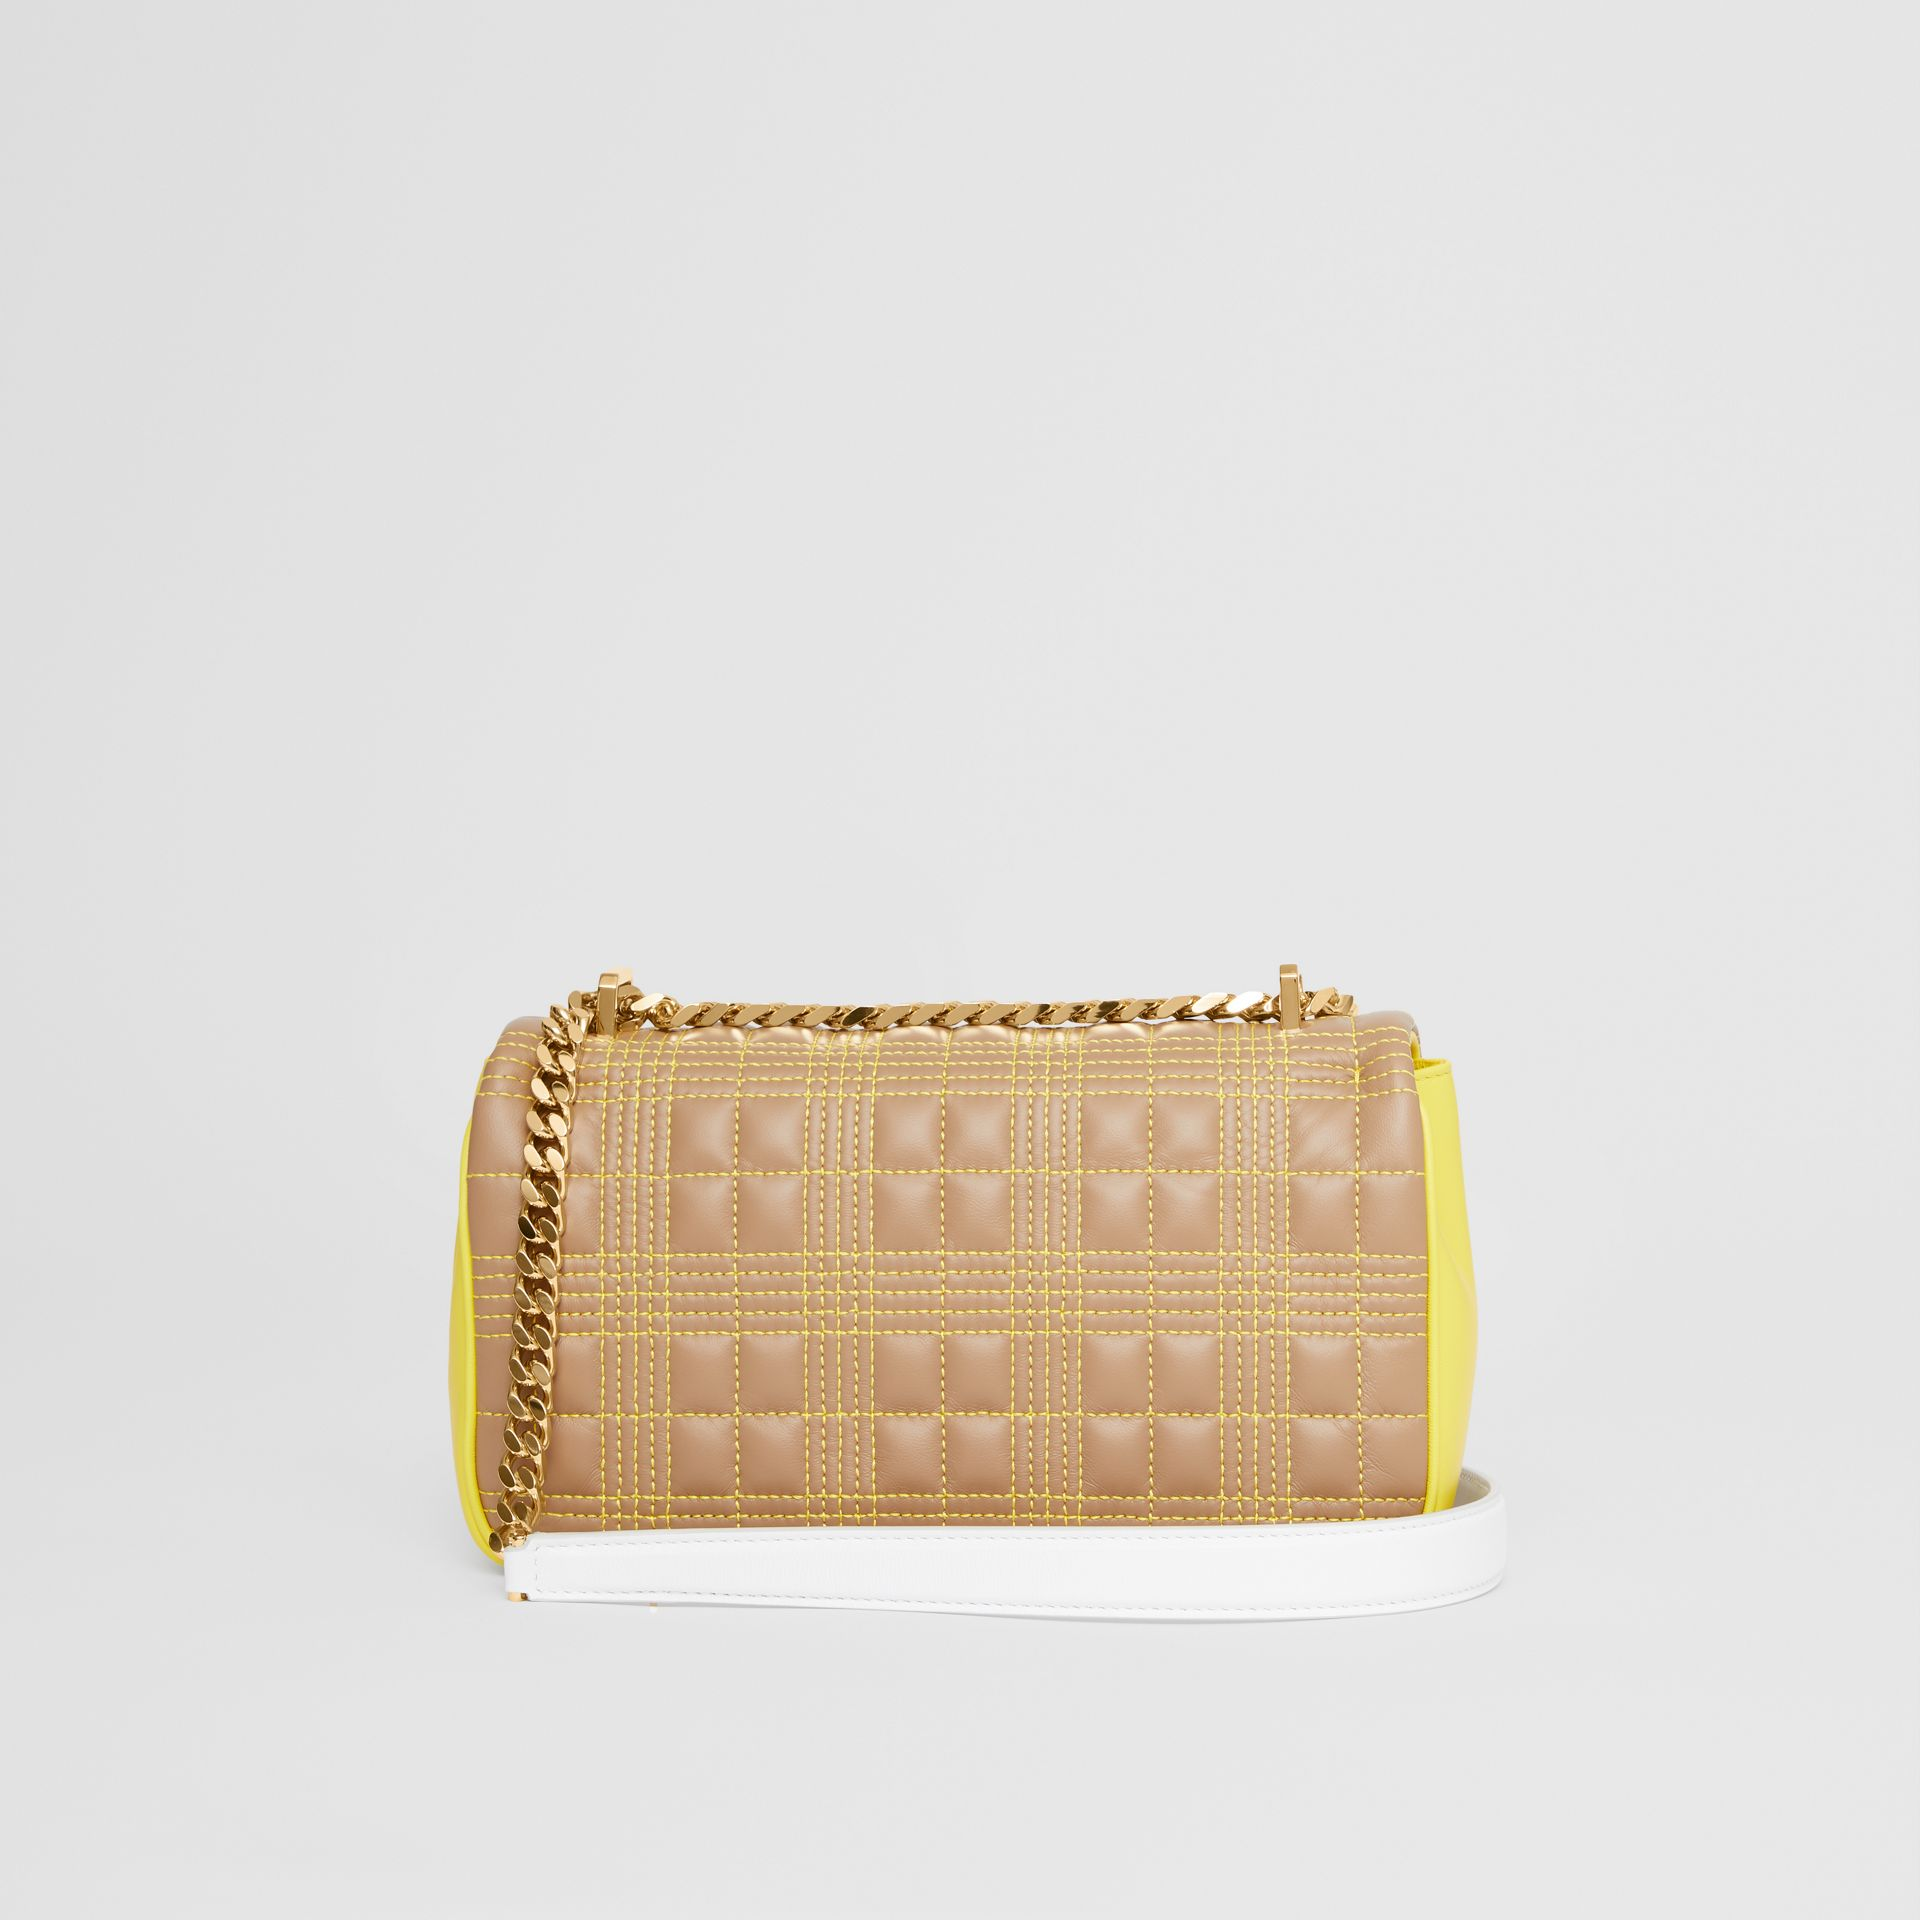 Small Quilted Tri-tone Lambskin Lola Bag in Camel/yellow - Women | Burberry Canada - gallery image 7